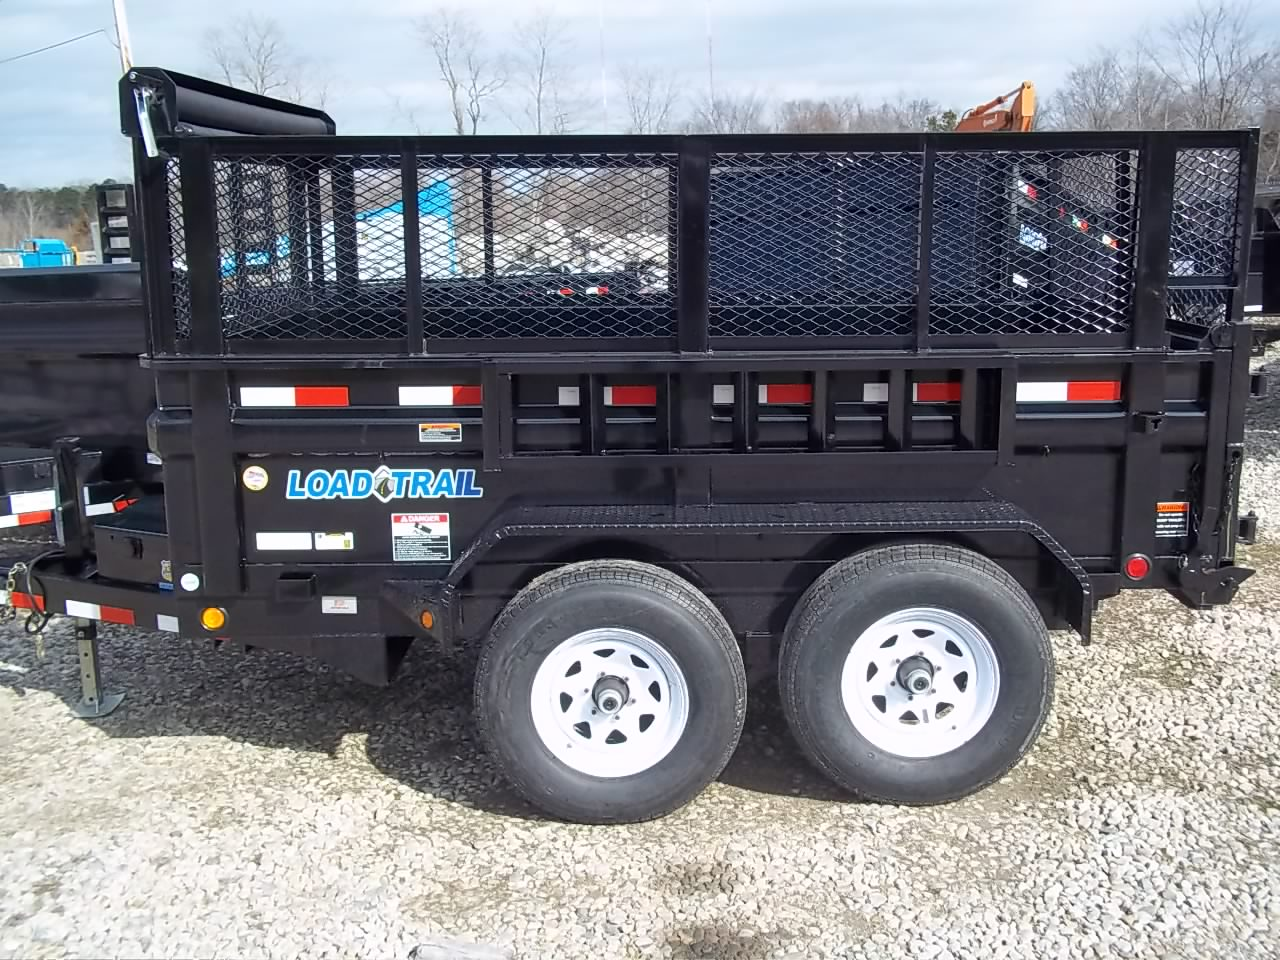 Dump Trailers – Cape Cod Boat Trailer on dump trailer dimensions, trailer brake controller schematic, dump truck electric diagram, dump trailer solenoid wiring, dump truck auction, cargo box on trailer schematic, dump trailer pump wiring diagram, dump trailer specifications,